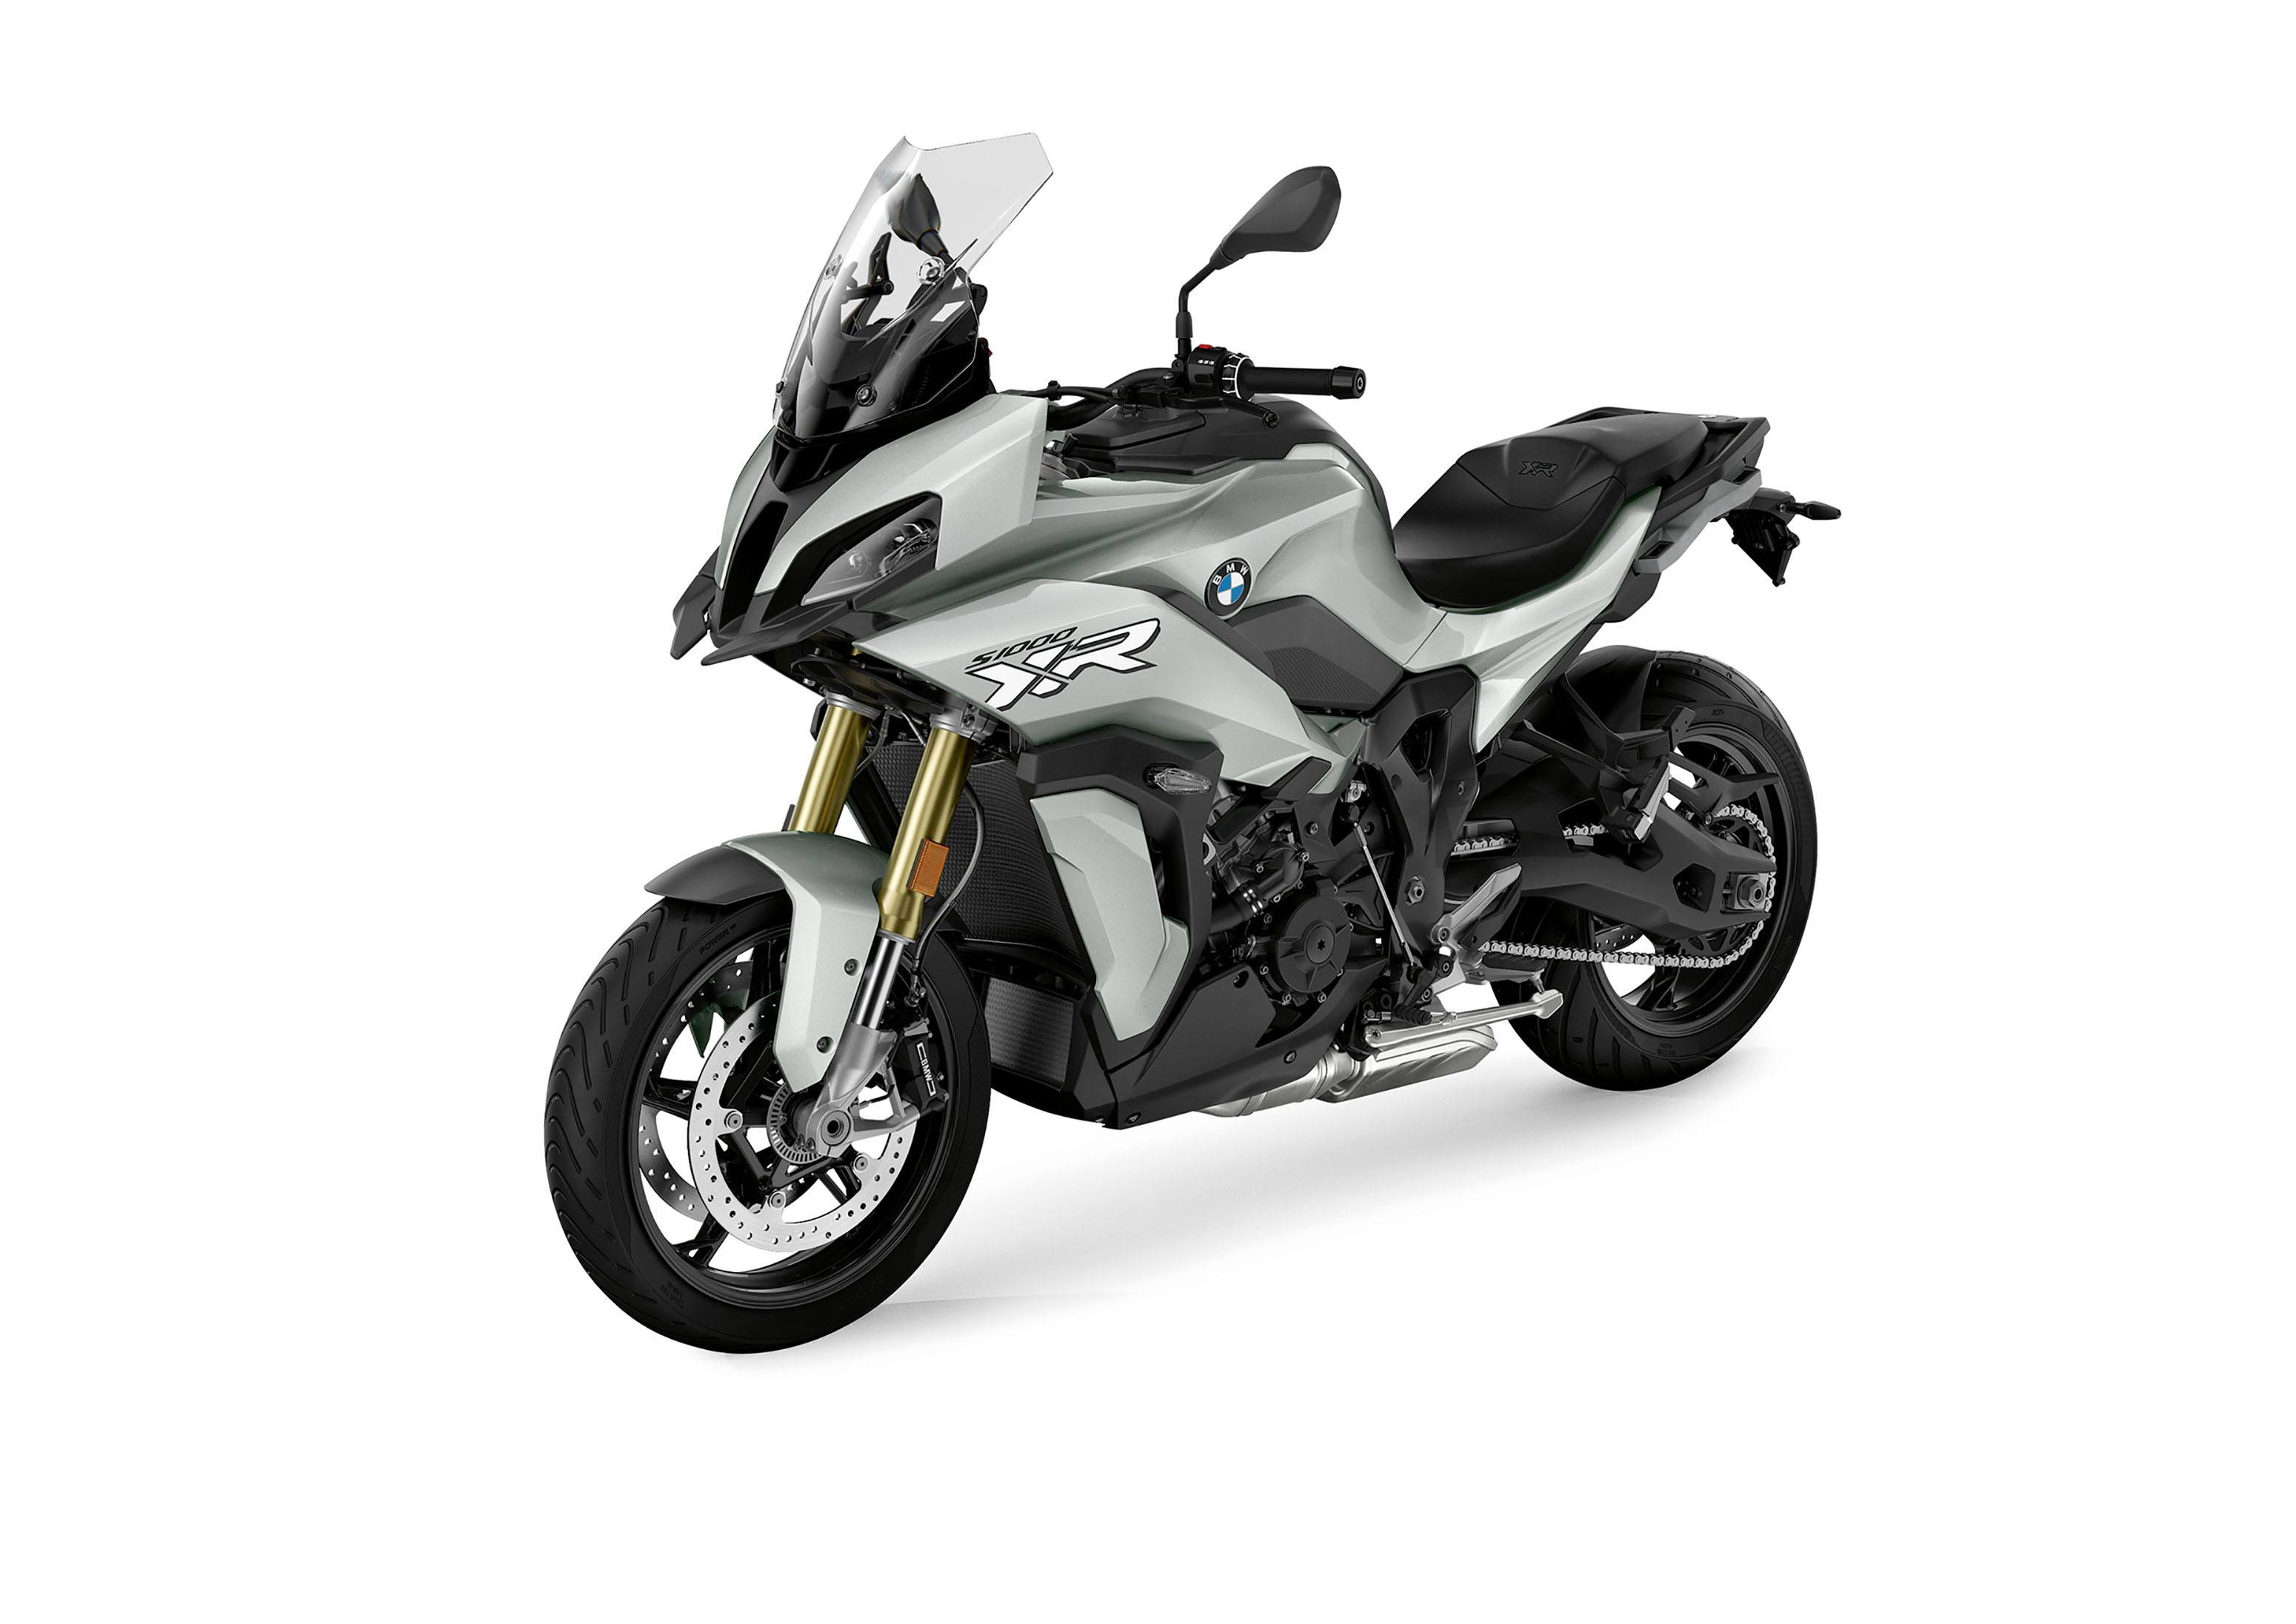 2020 bmw s1000xr first look - motorcycle